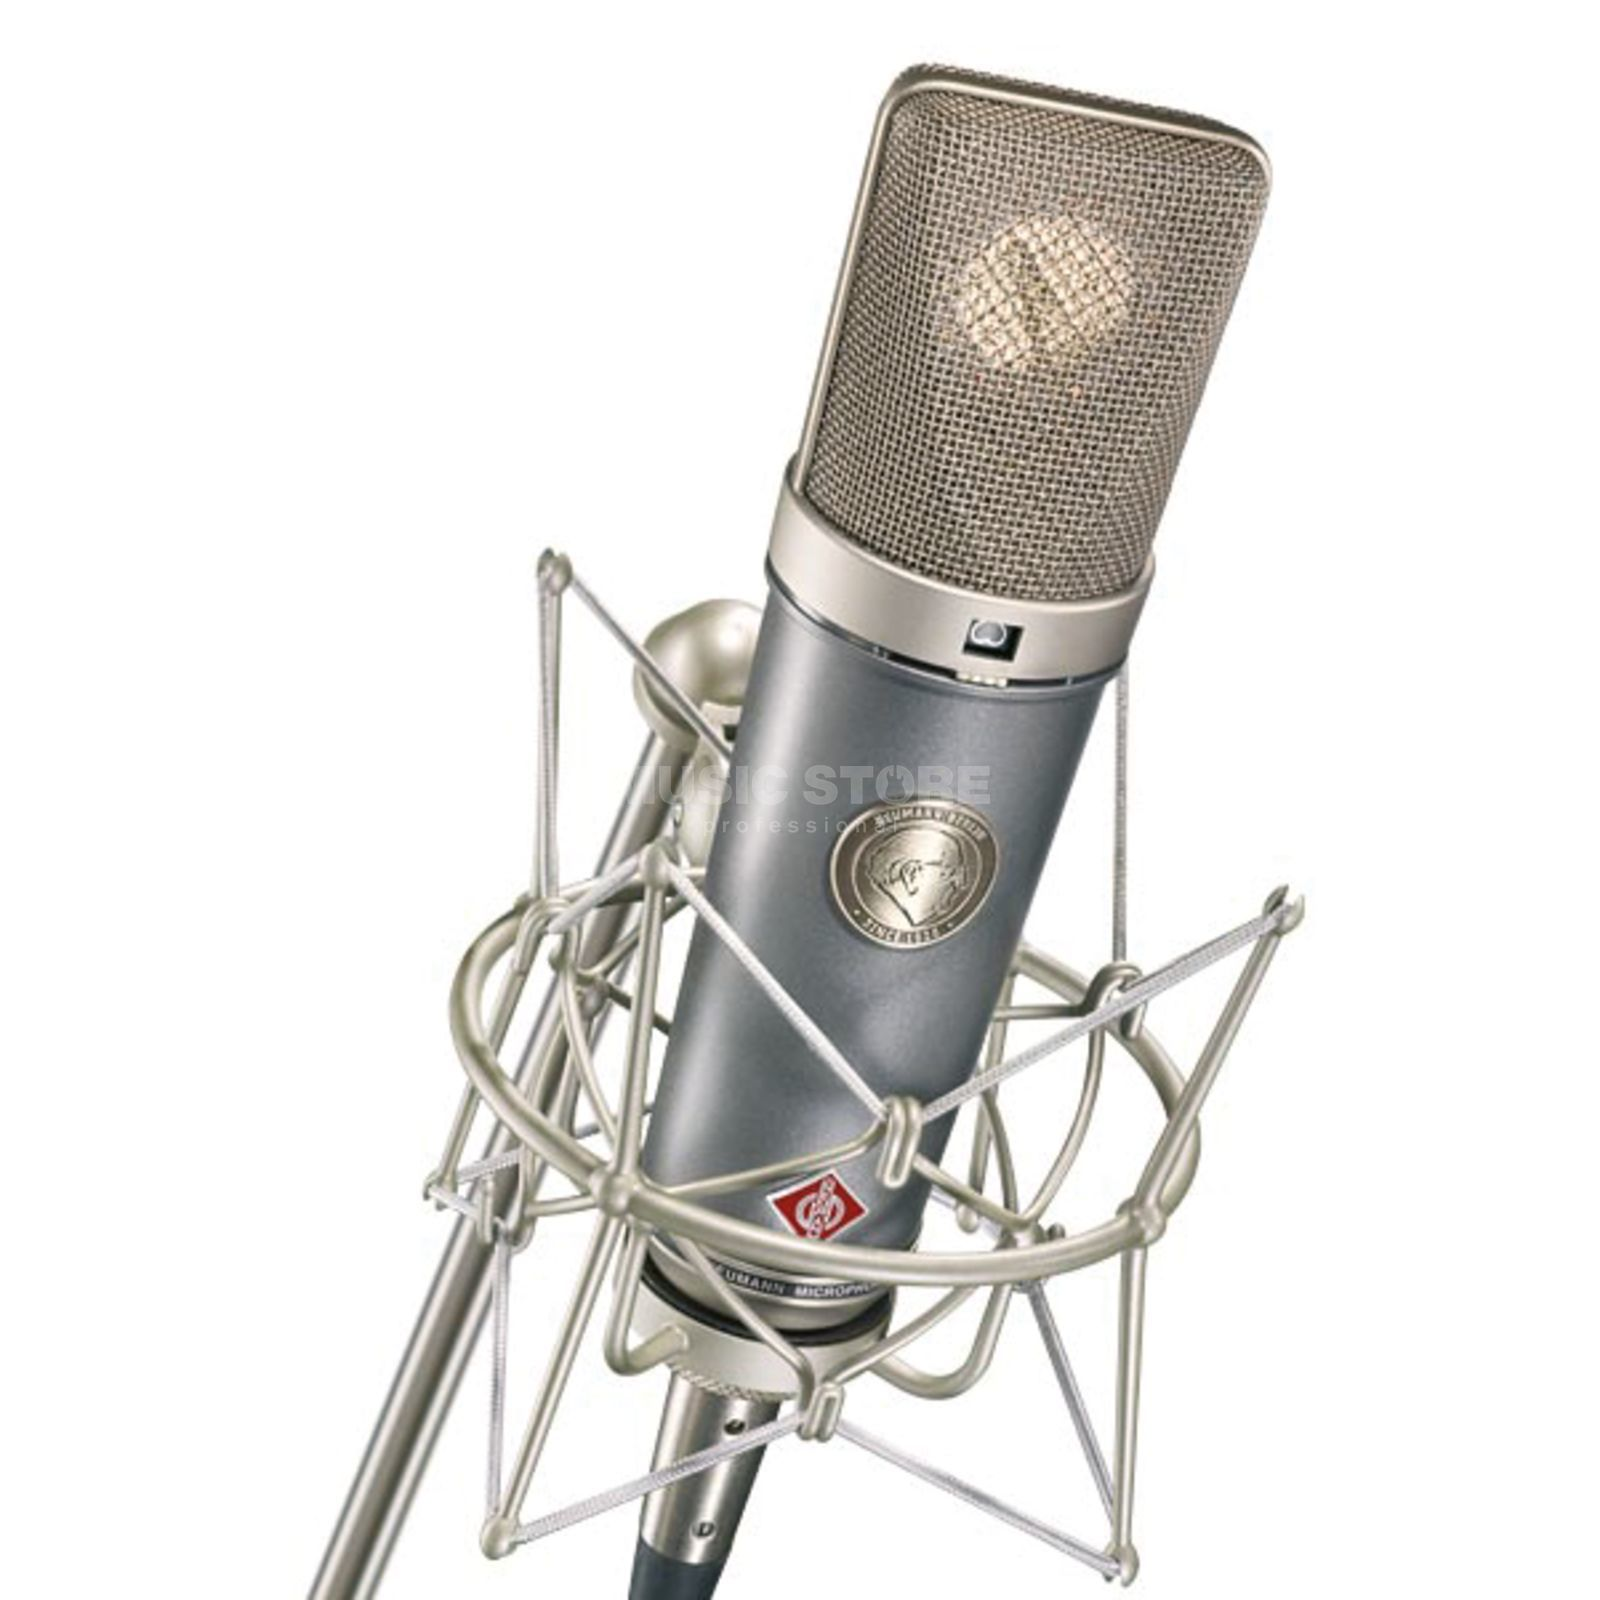 Neumann TLM 103 ni Studio Bundle - Set Product Image